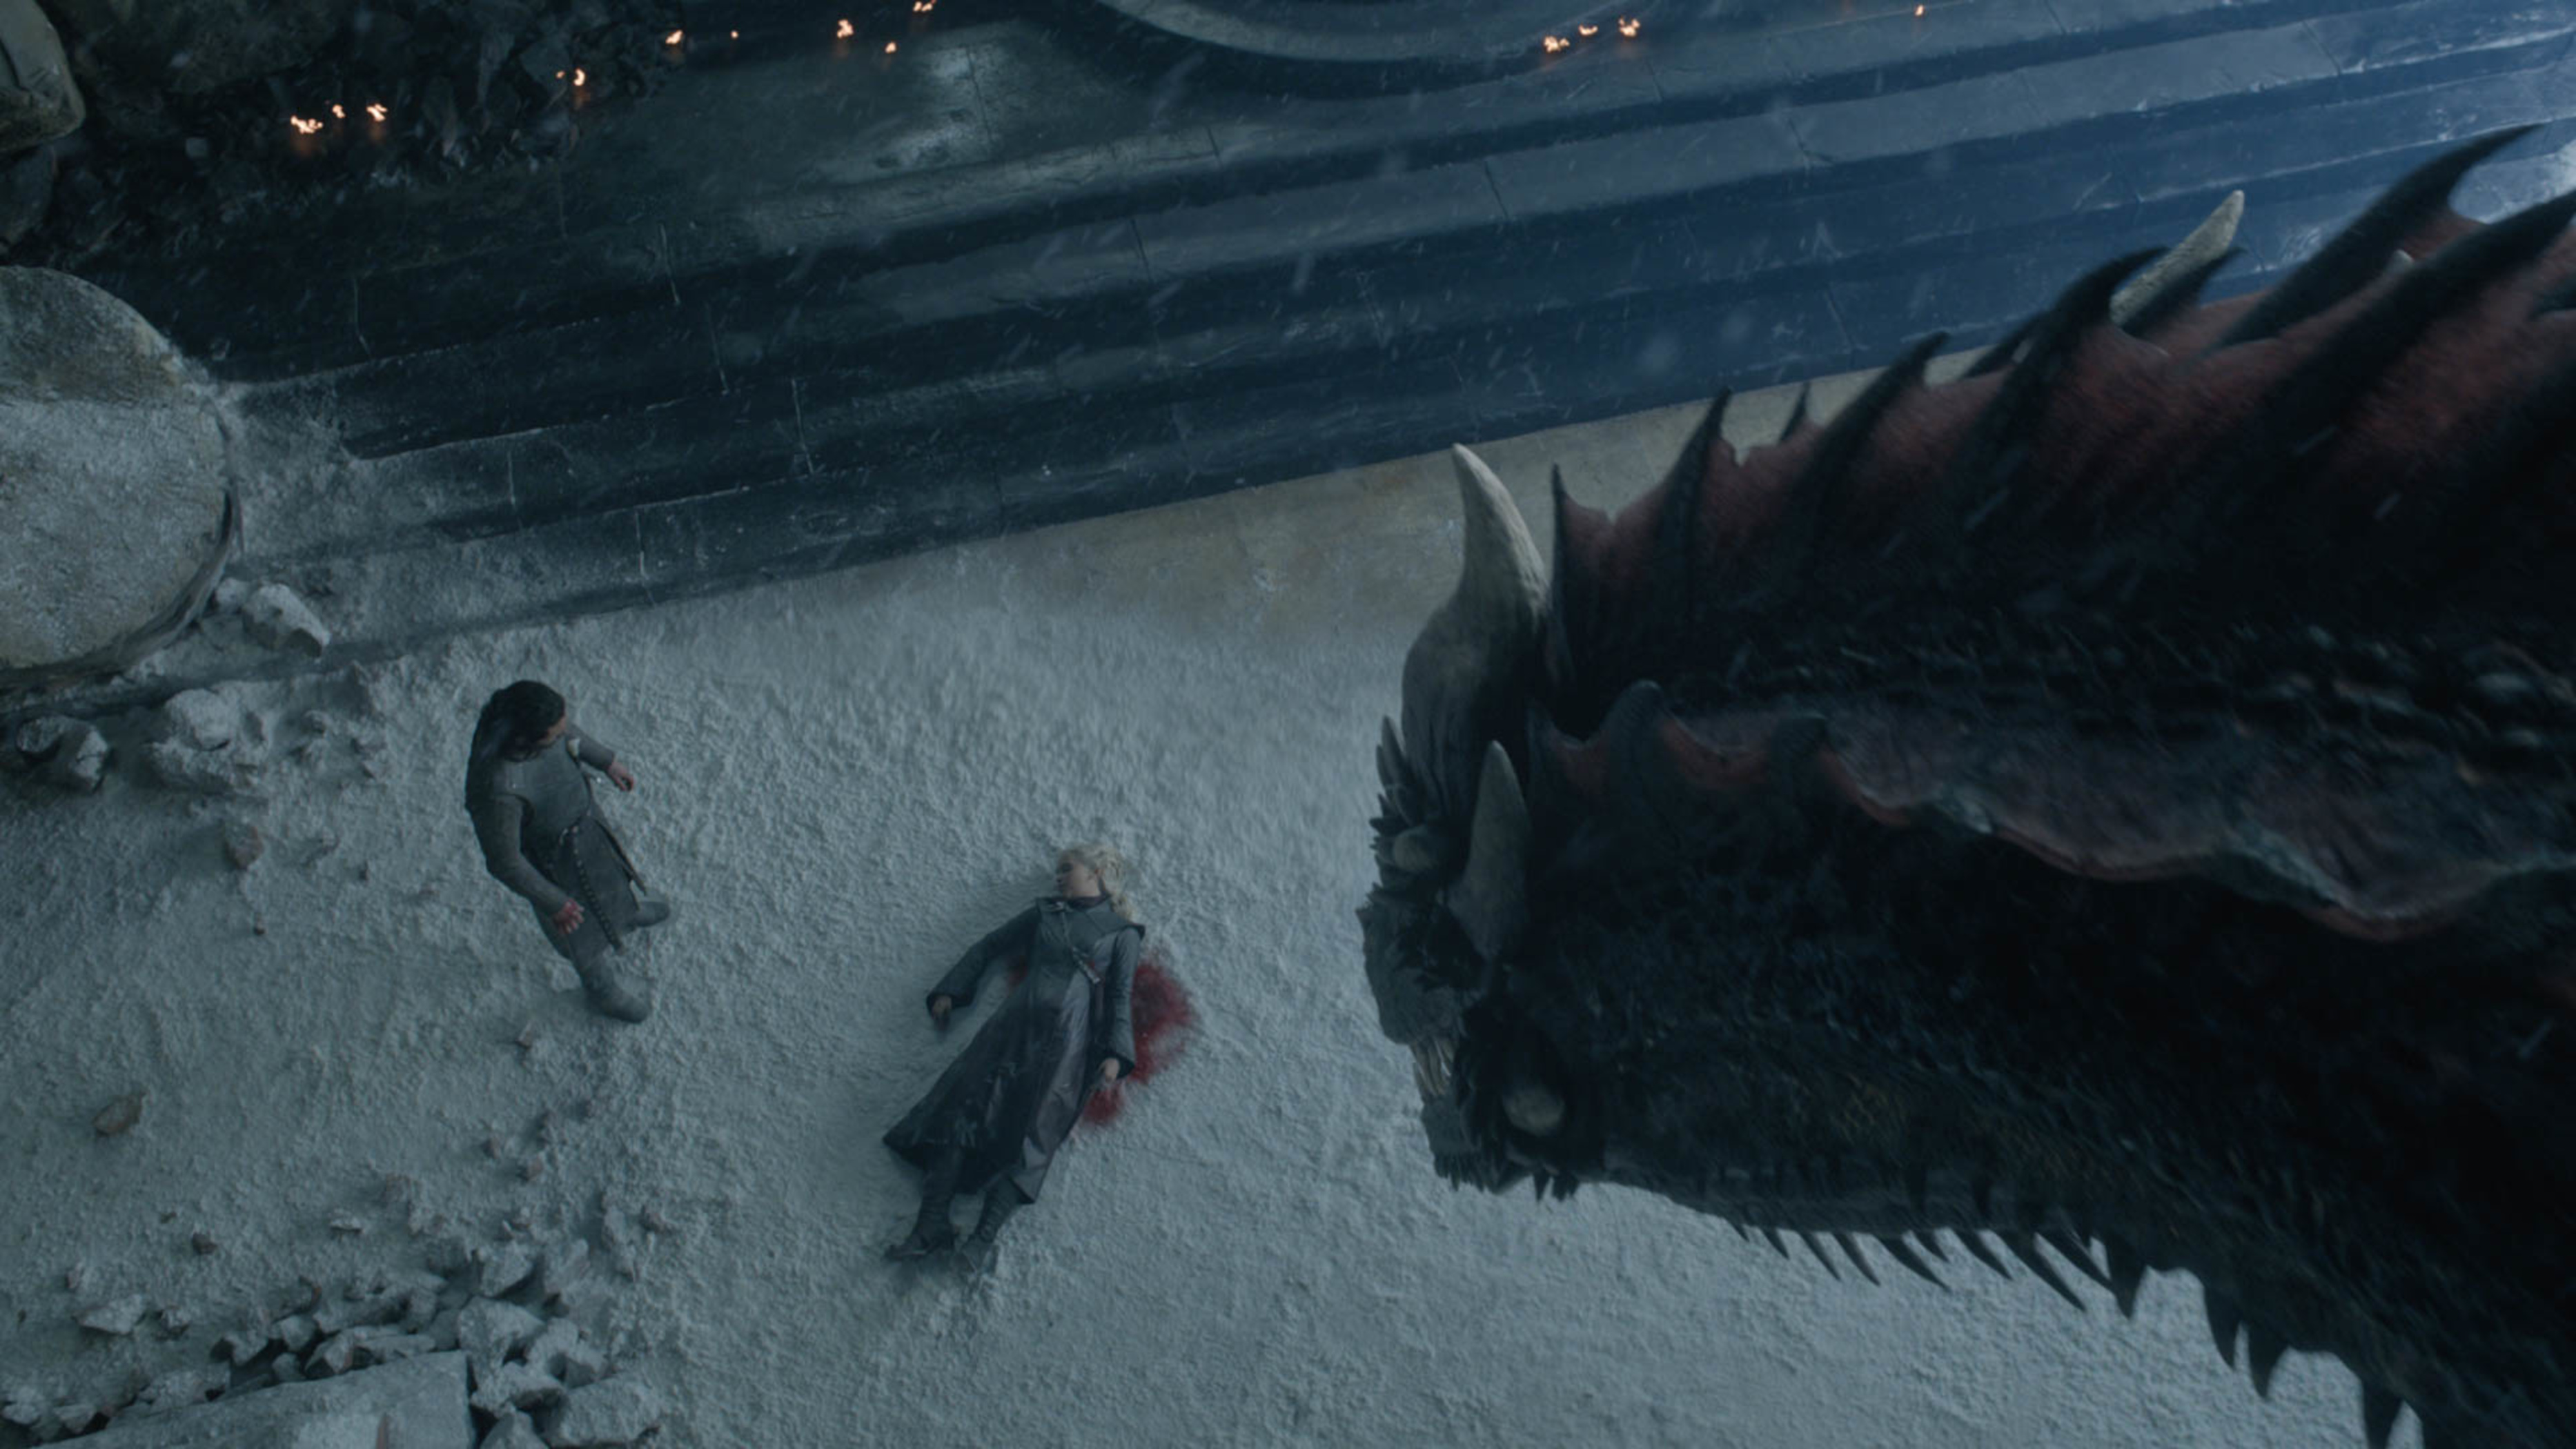 Official-806-Drogon-sees-Jon-and-dead-Daenerys-Courtesy-of-HBO.jpg